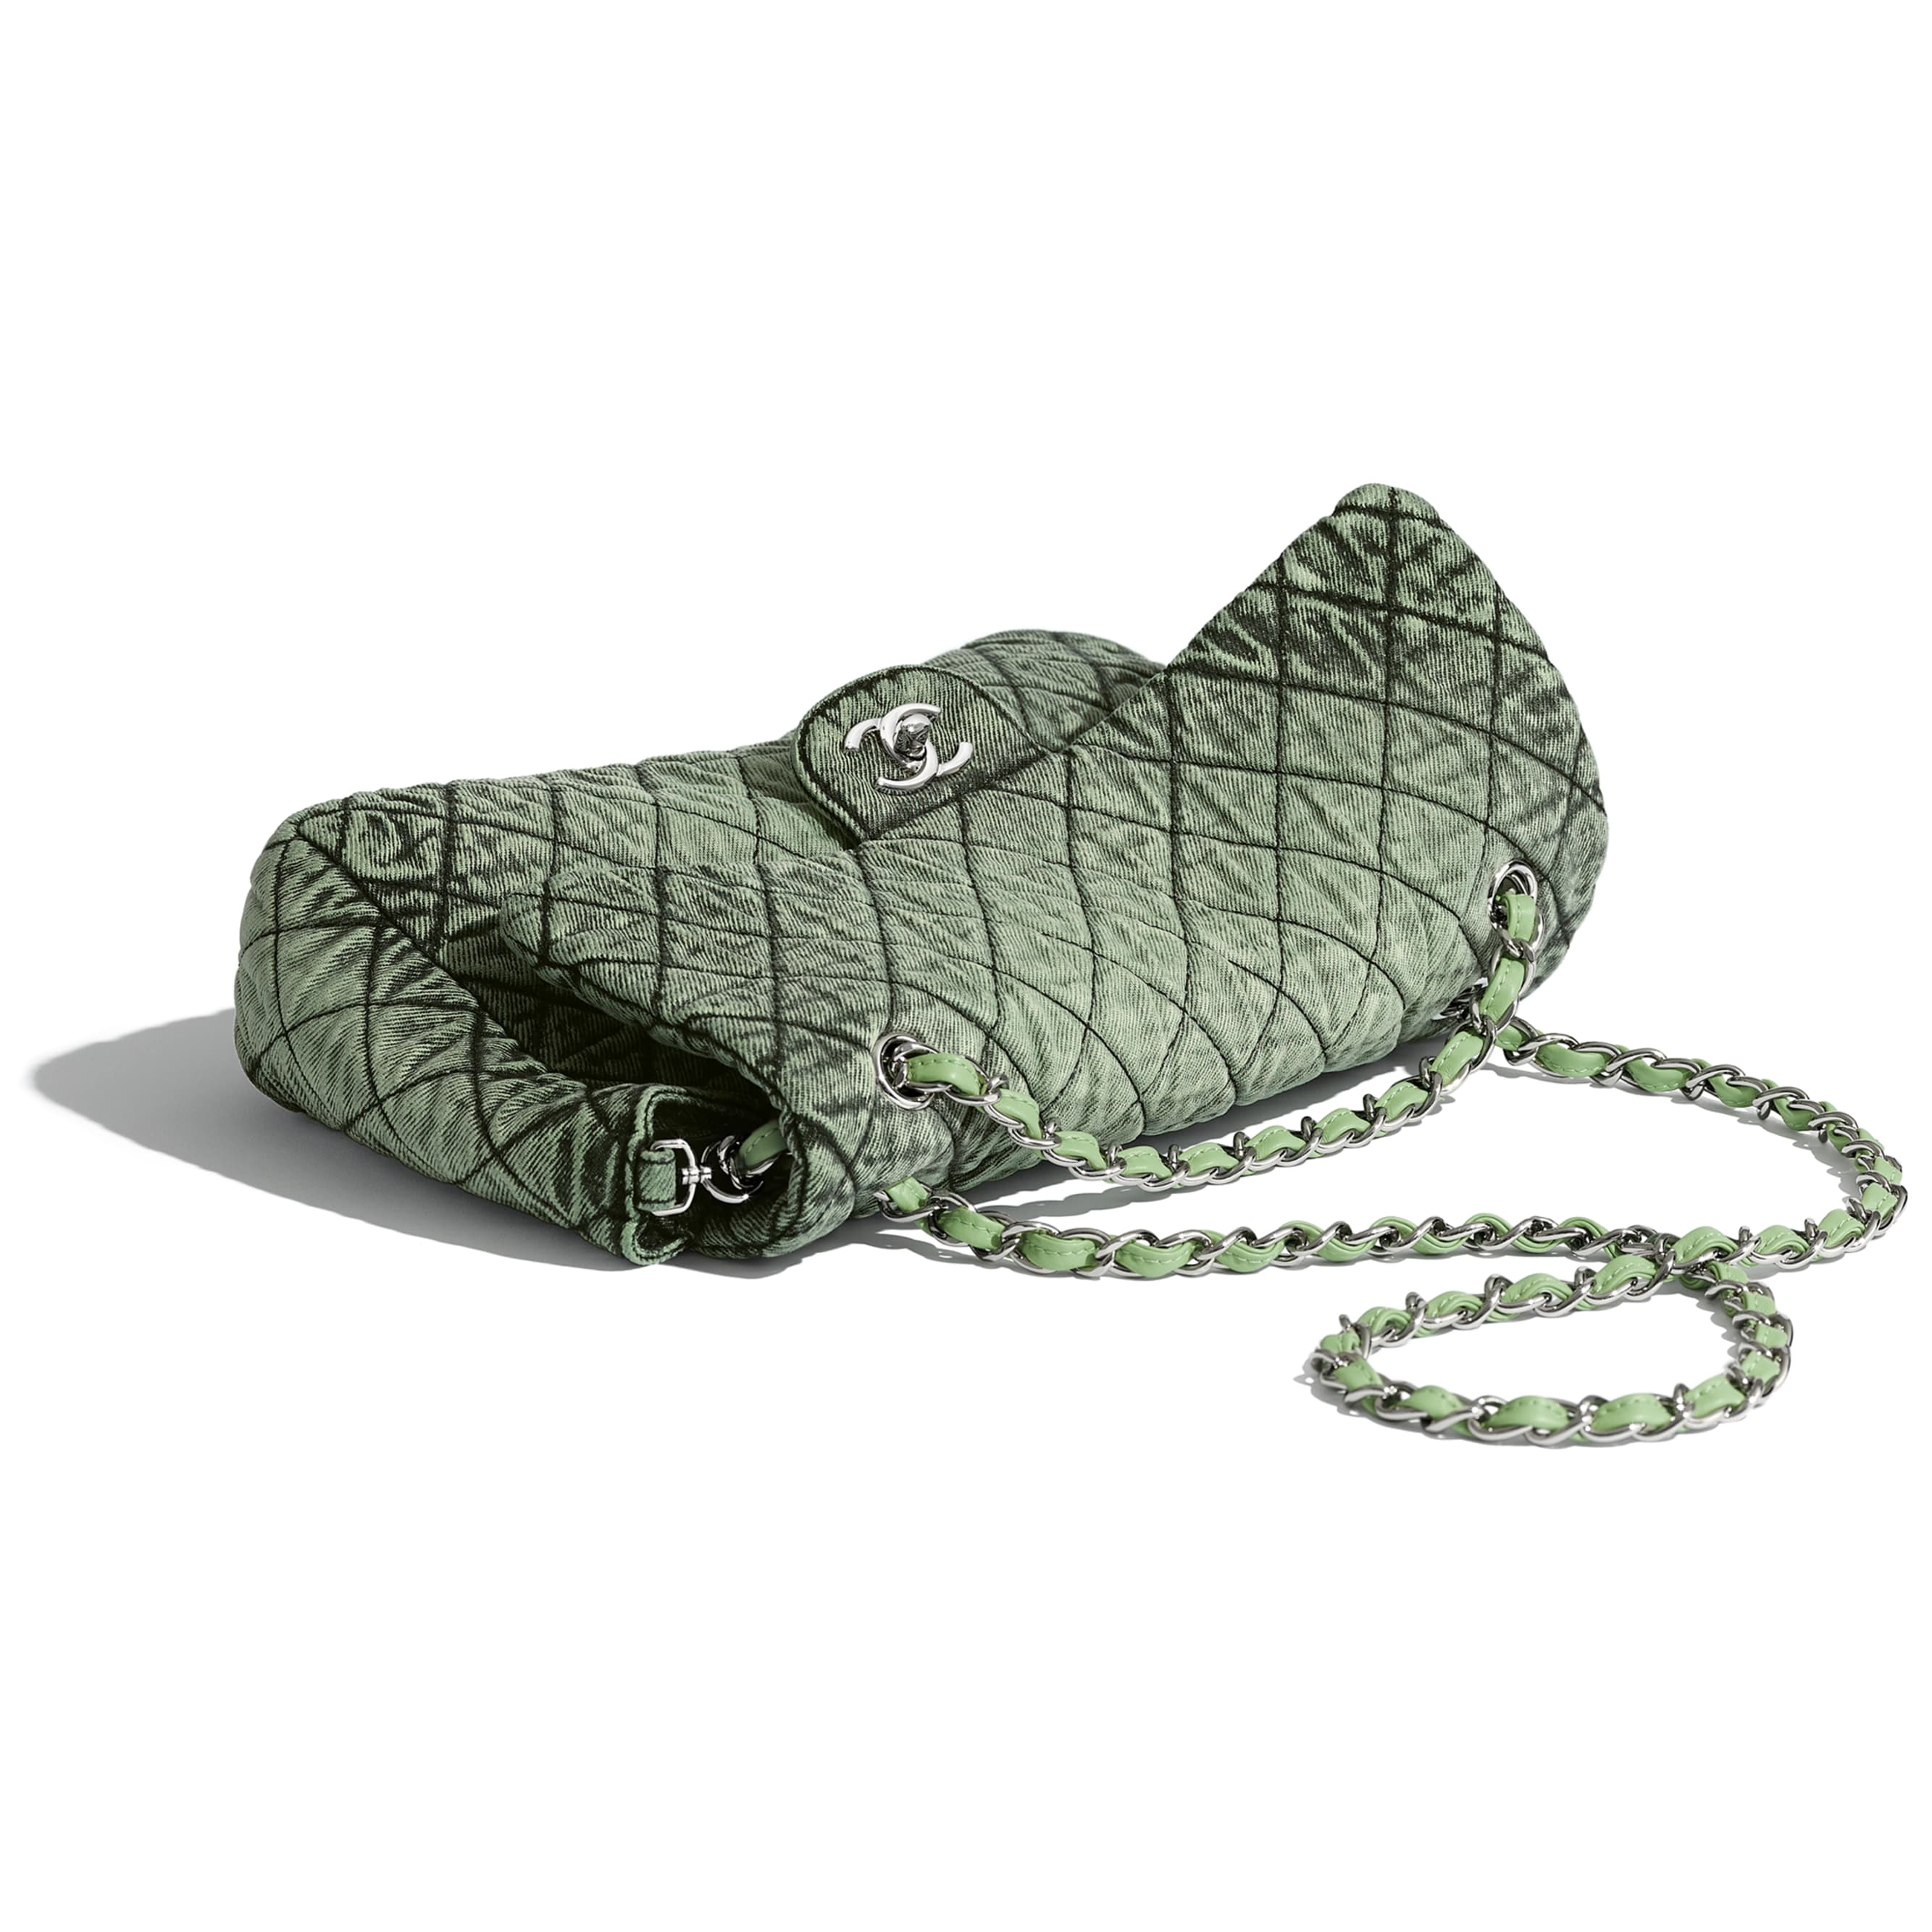 Flap Bag - Green & Black - Denim & Silver-Tone Metal - CHANEL - Extra view - see standard sized version